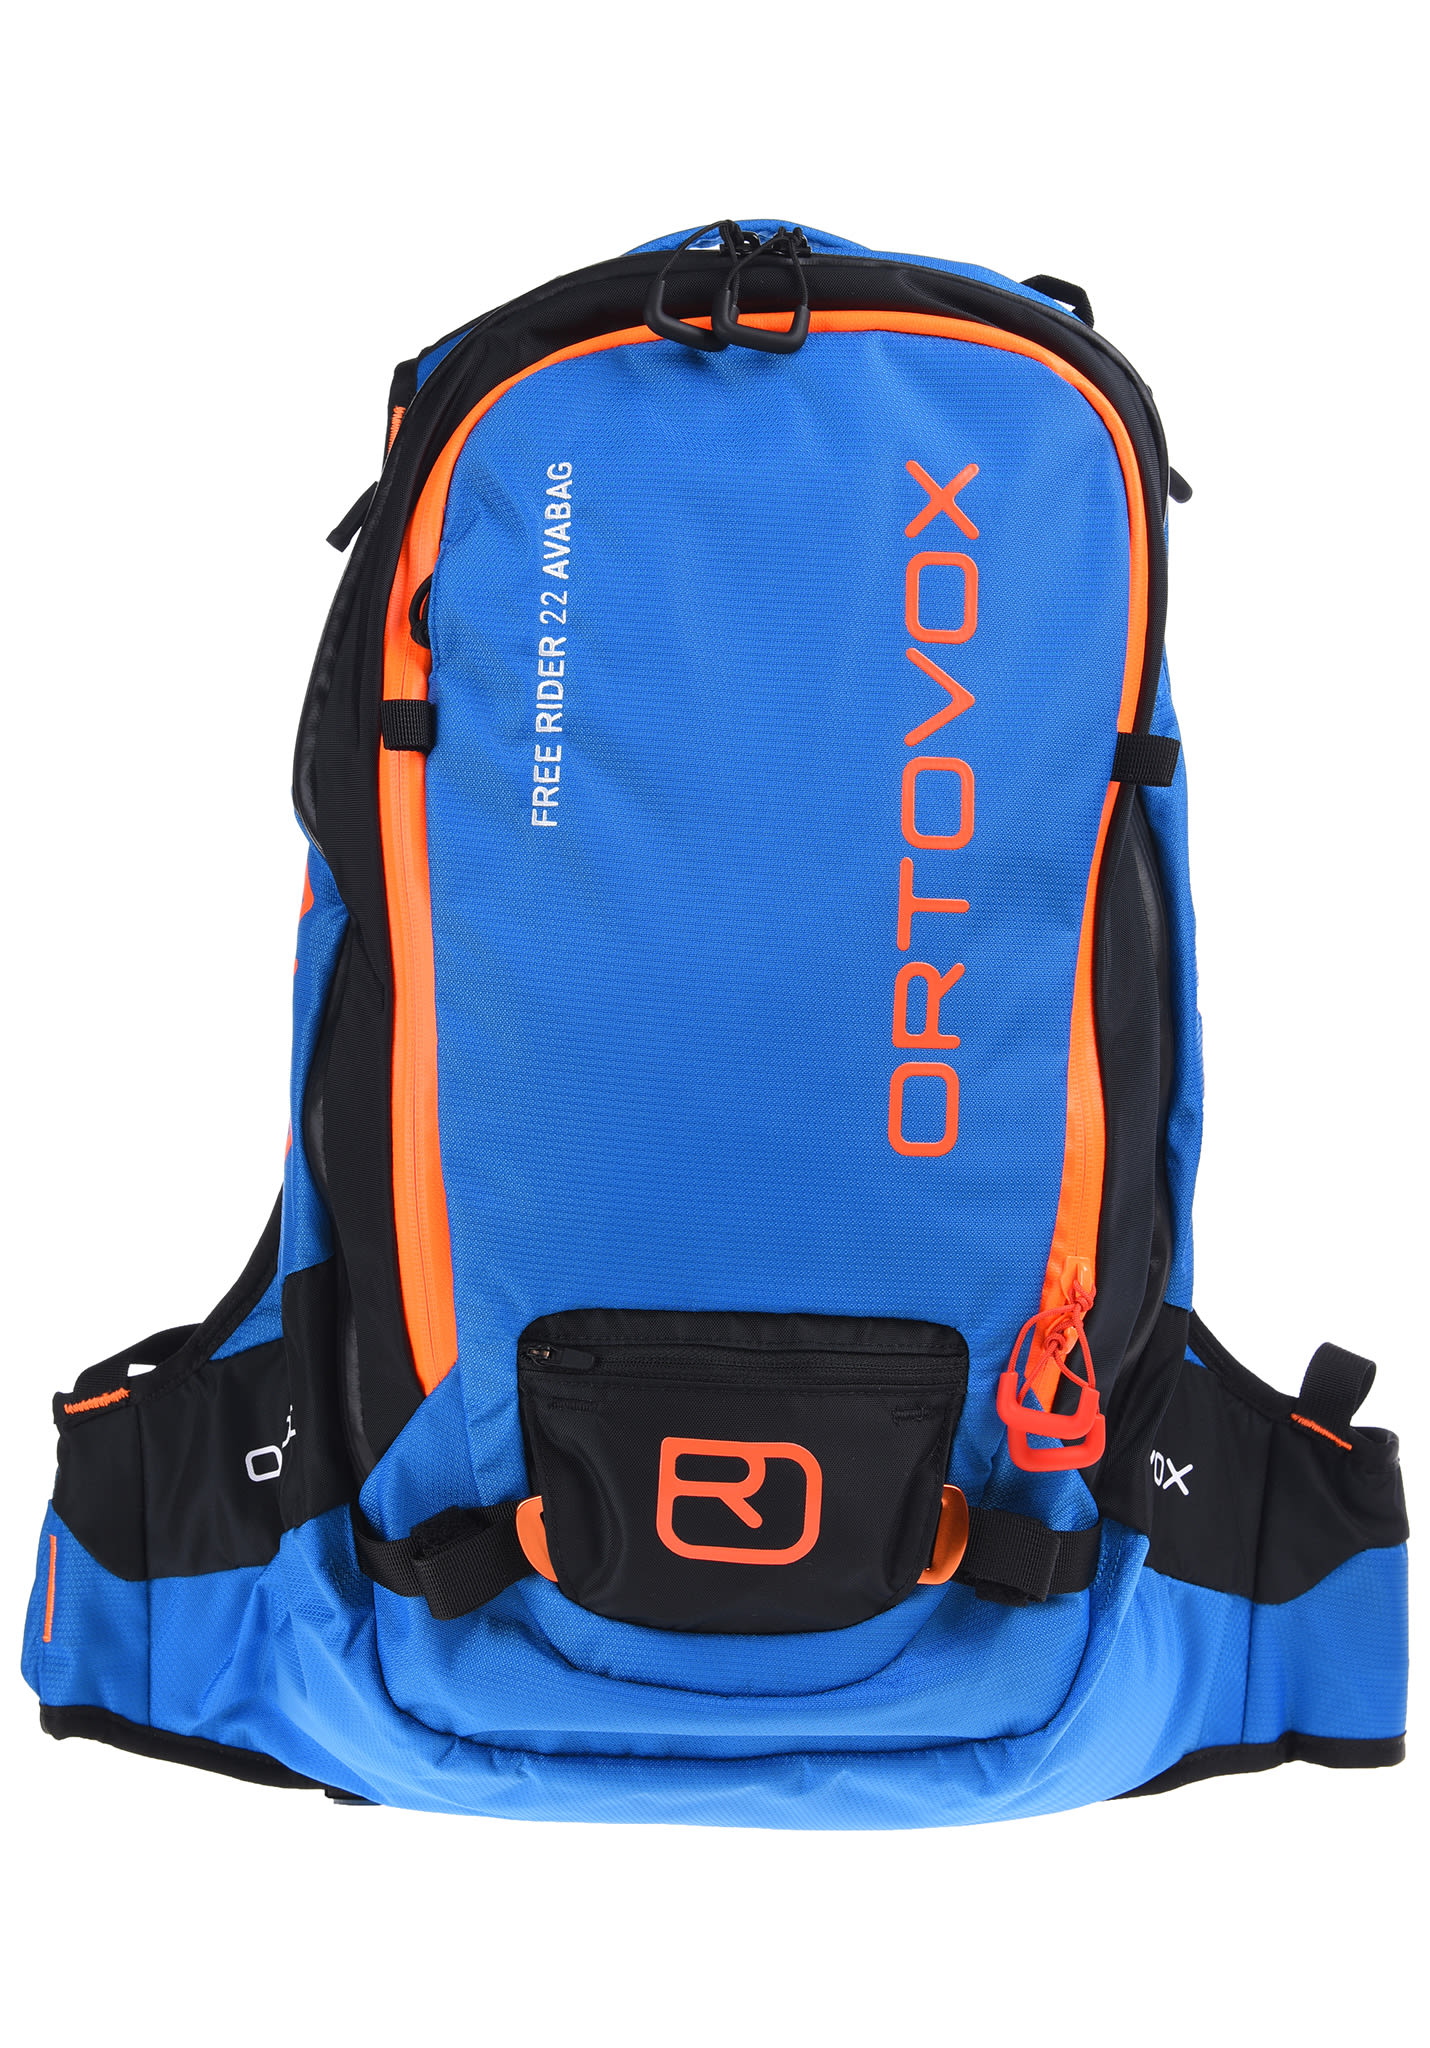 fc2a6ac411 ORTOVOX Free Rider 22L AVABAG Kit - Avalanche Backpack - Blue - Planet  Sports